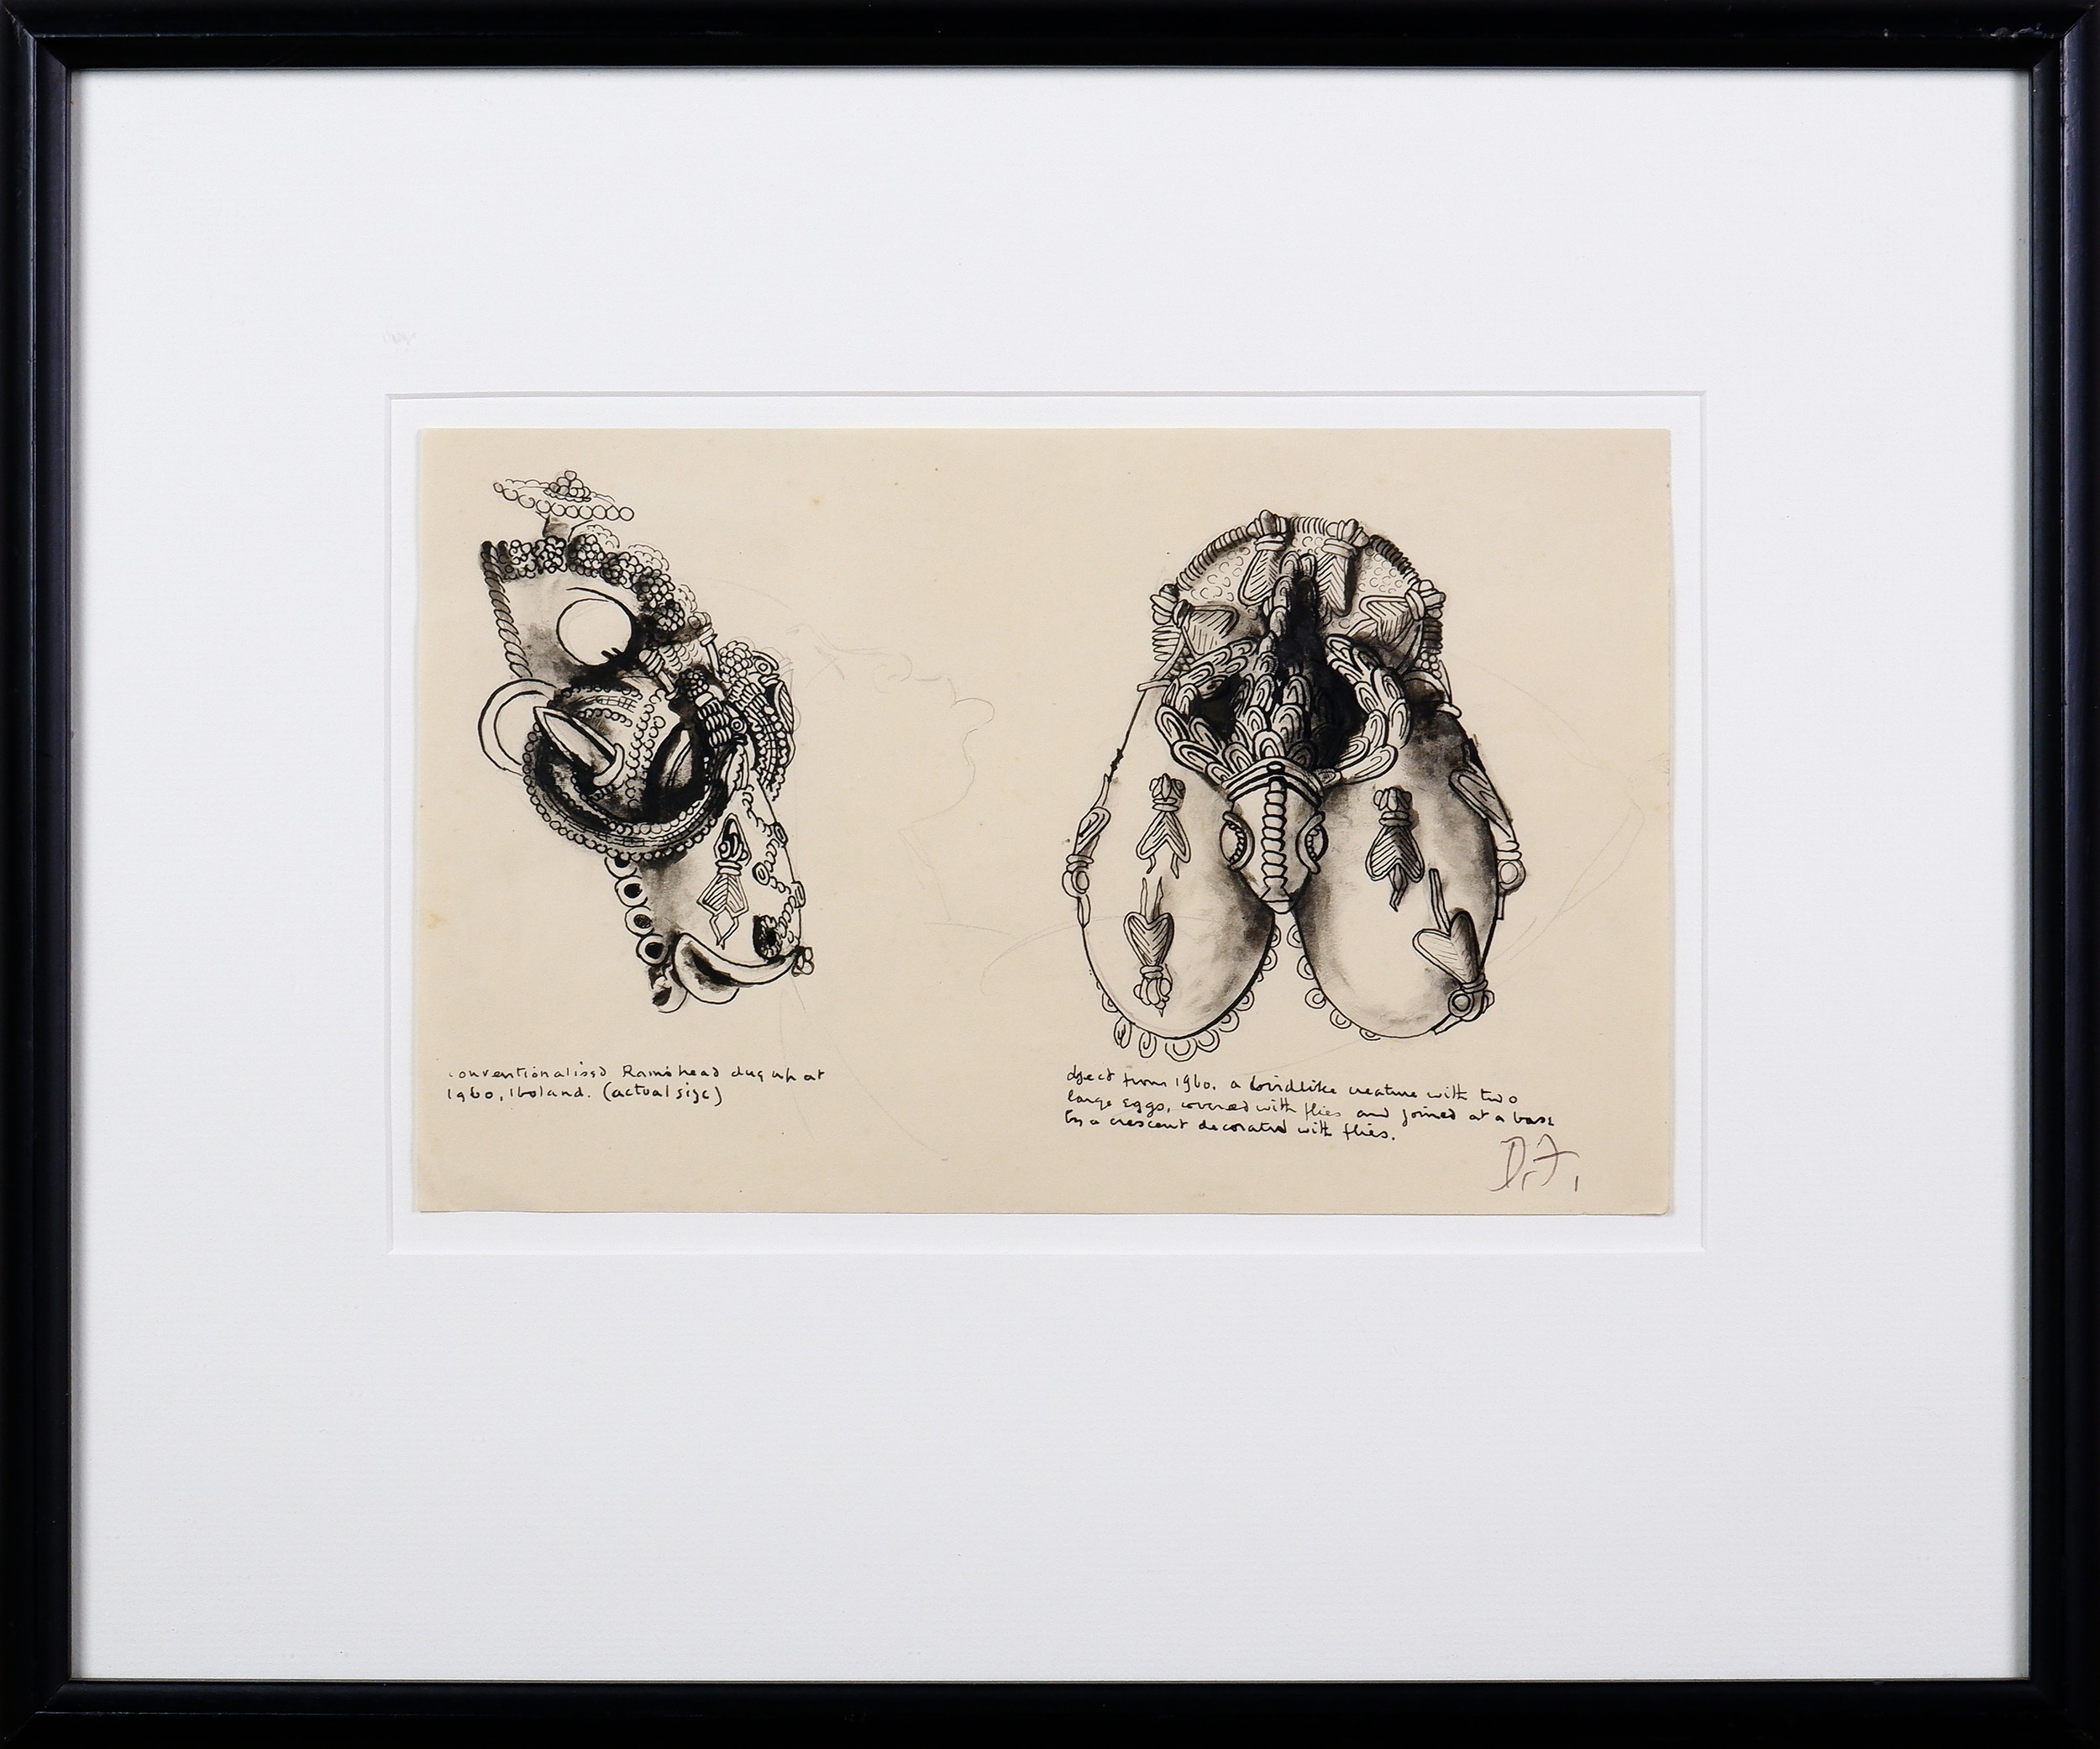 'Donald Friend (1915-1989), Sketch of African Artefacts, Nigeria, 1938, Ink on Paper, 17 x 27 cm (sheet size)'